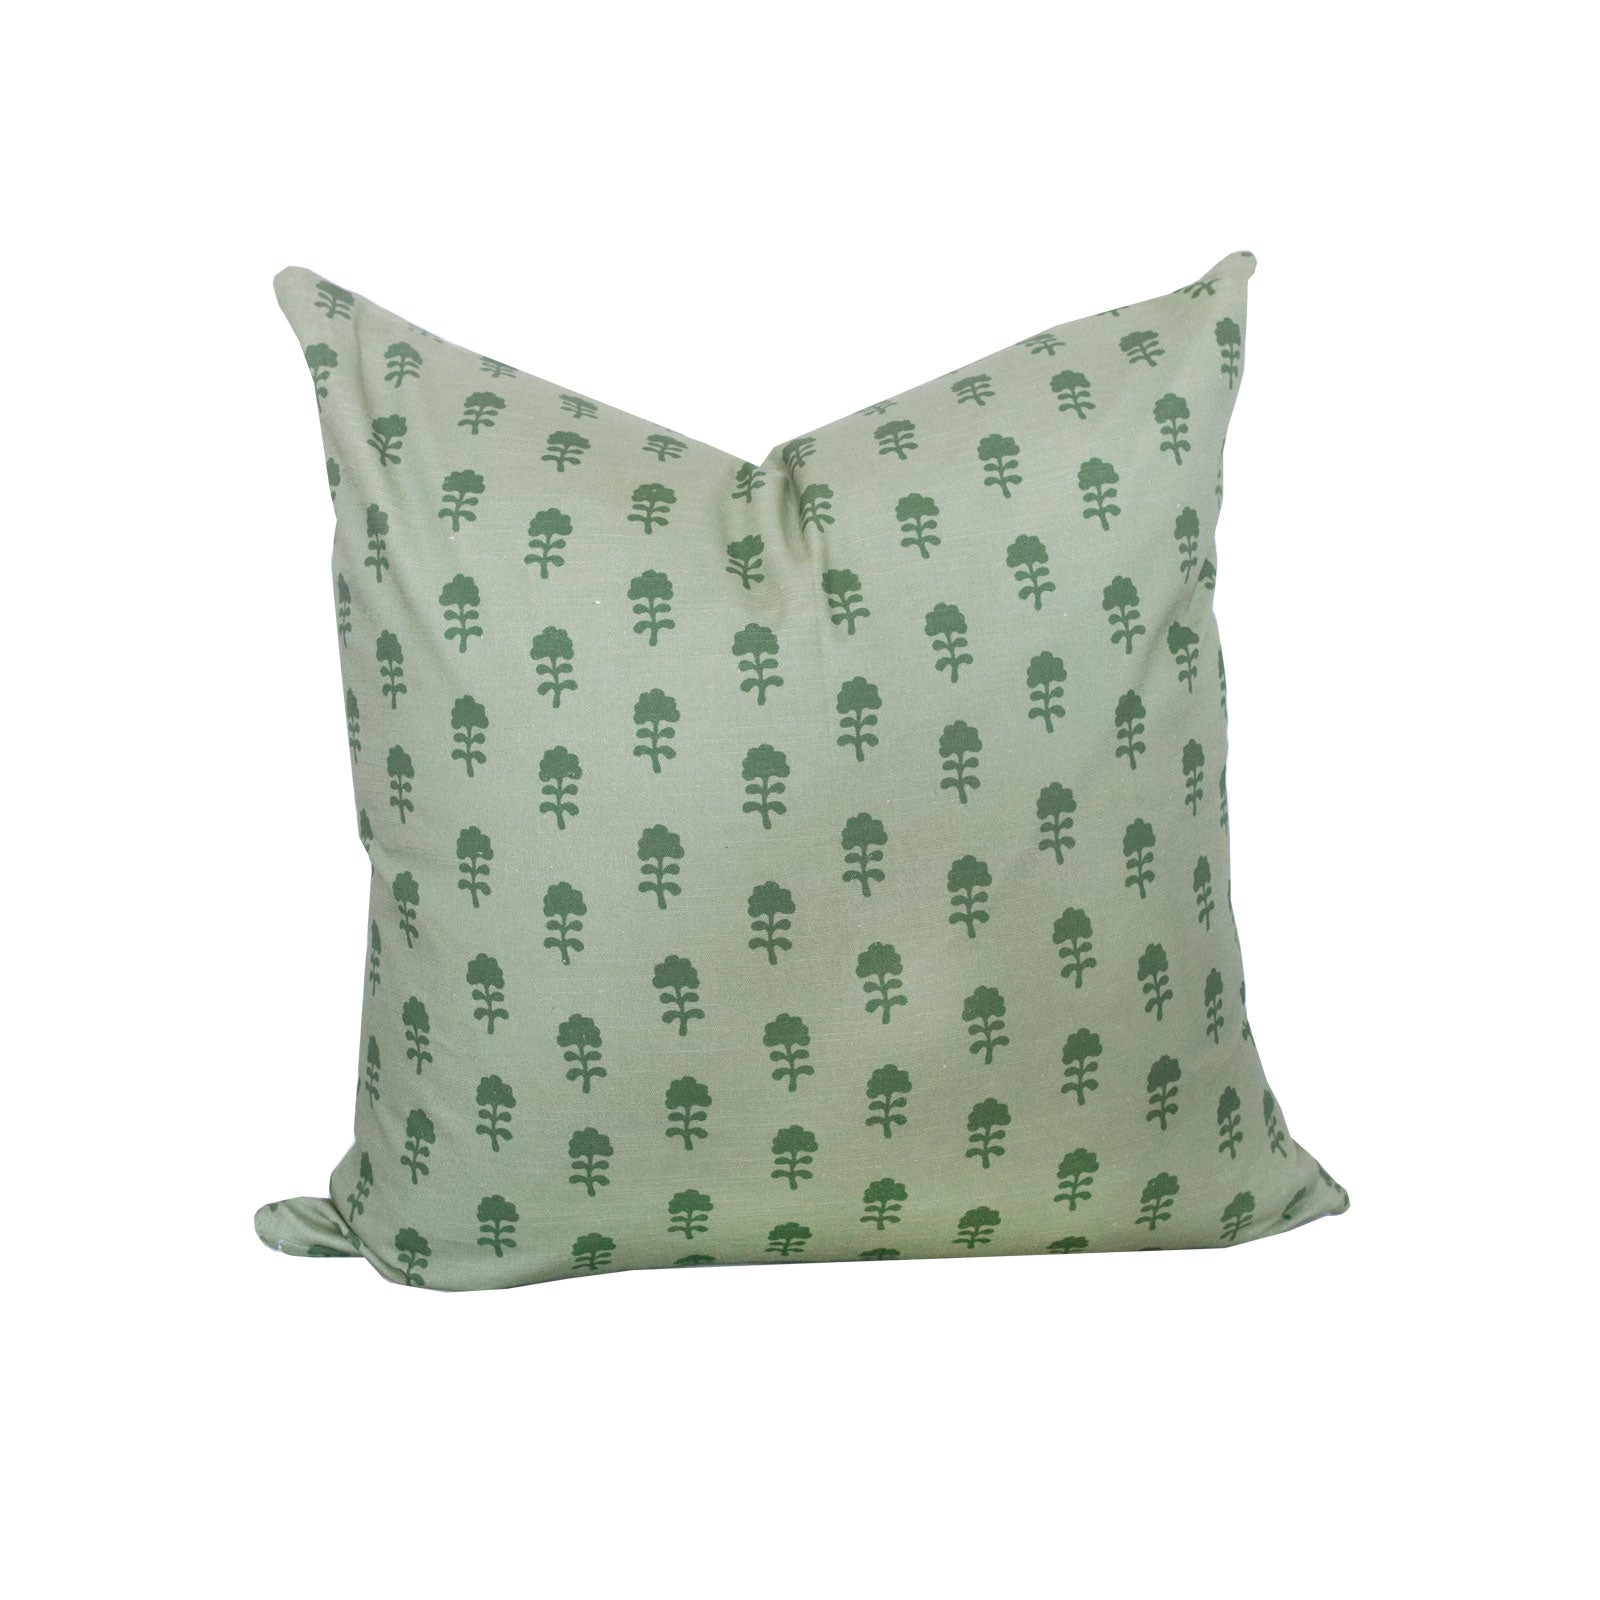 Birdie Pillow in Olive on Sage